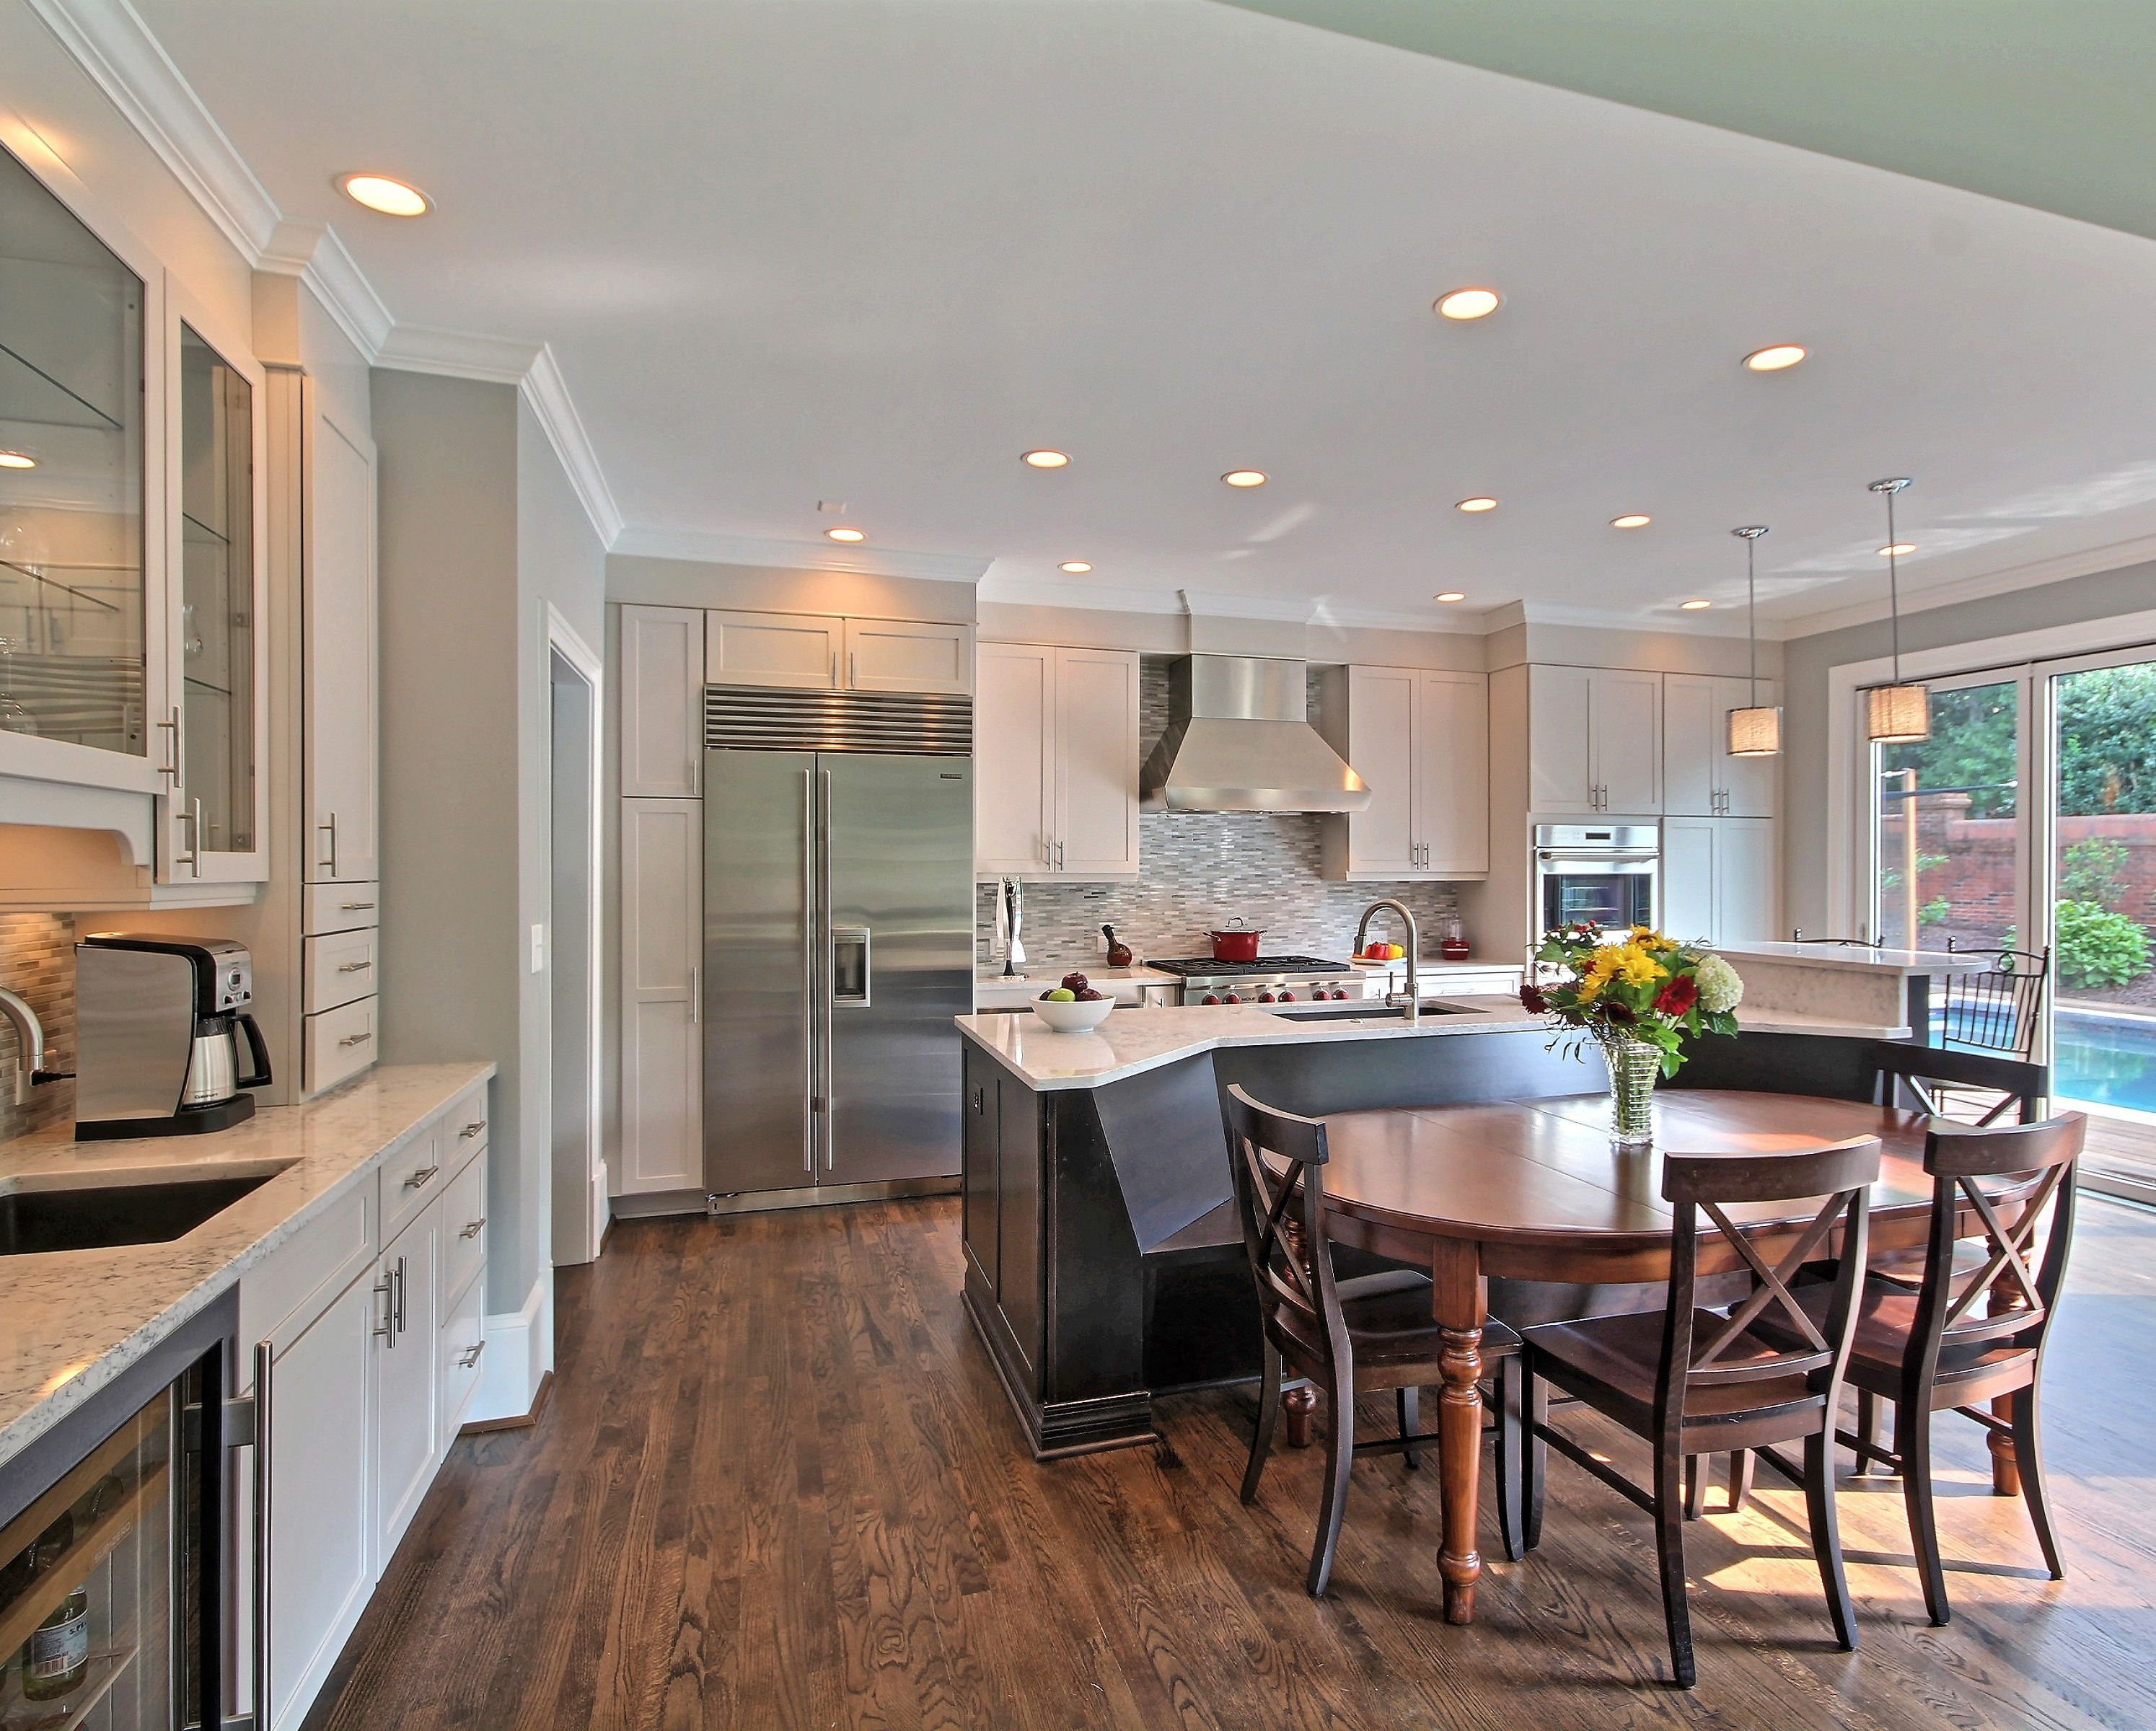 Open Kitchen With Bench Seating Area White Cabinets